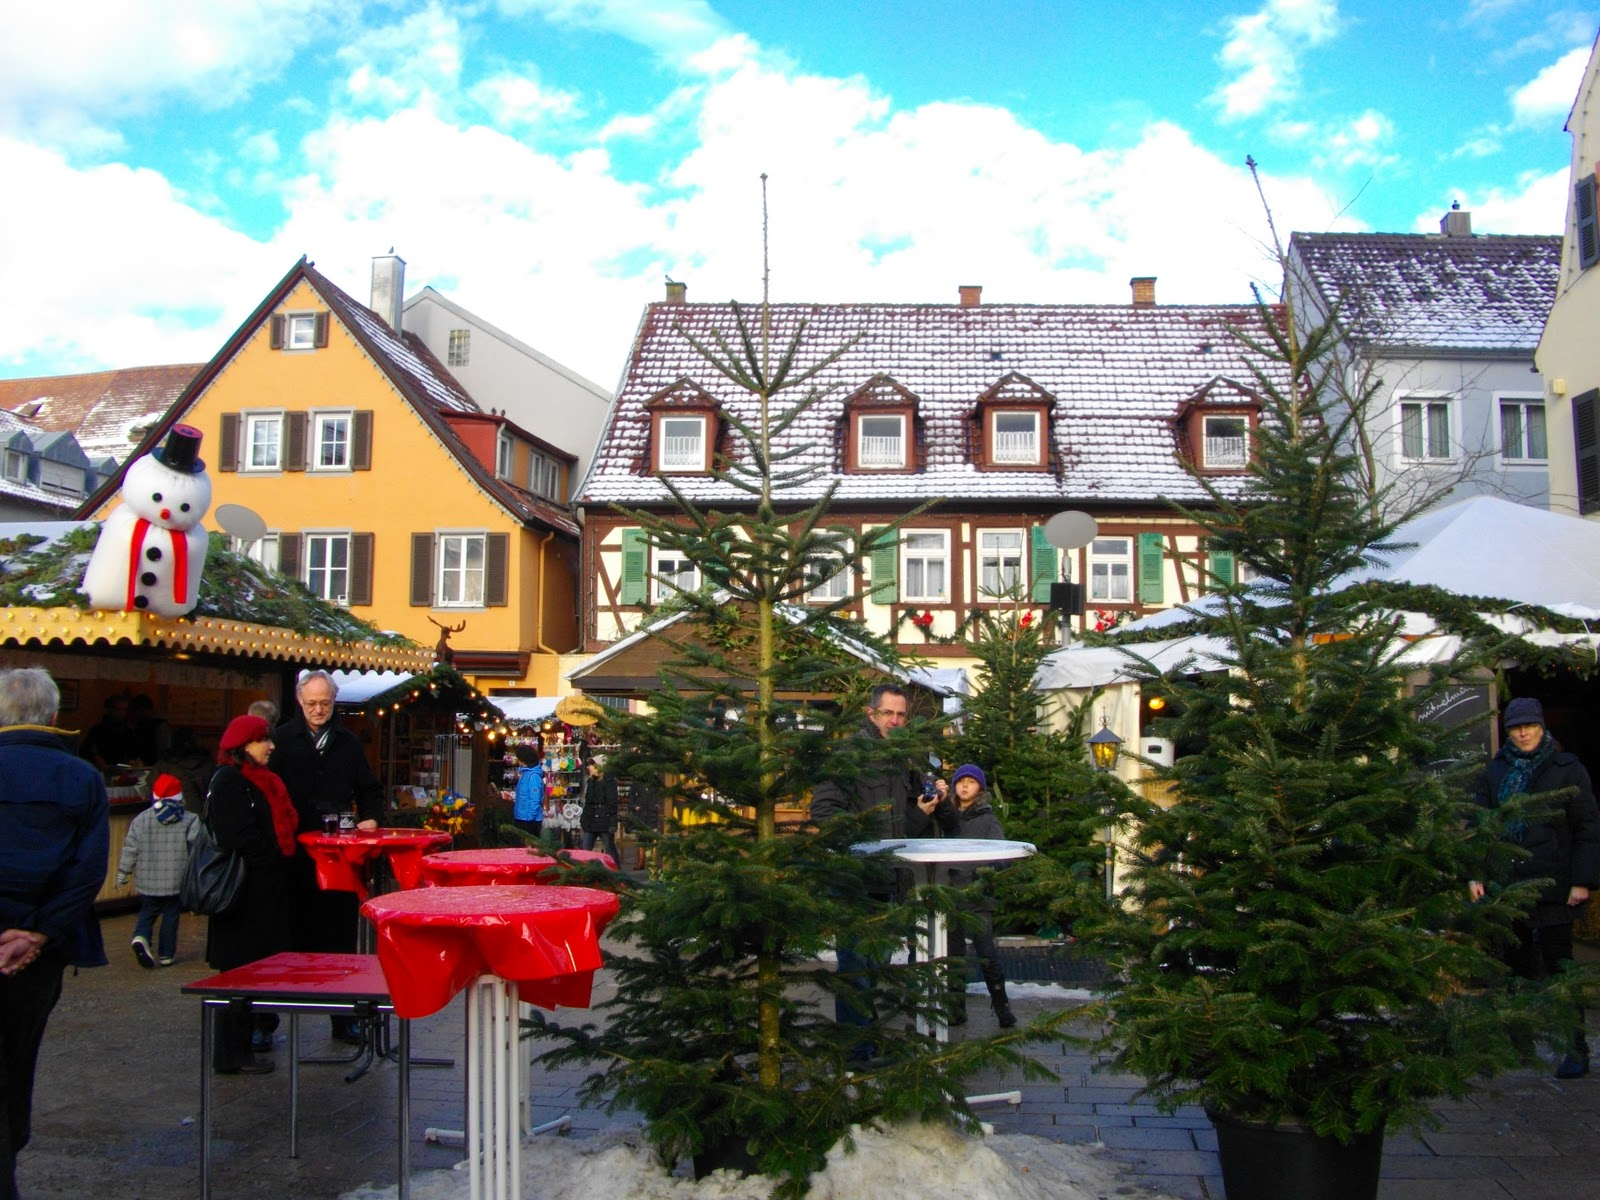 Offenburg Germany  city pictures gallery : 2010 Christmas market in Offenburg, Germany photos | Life in ...